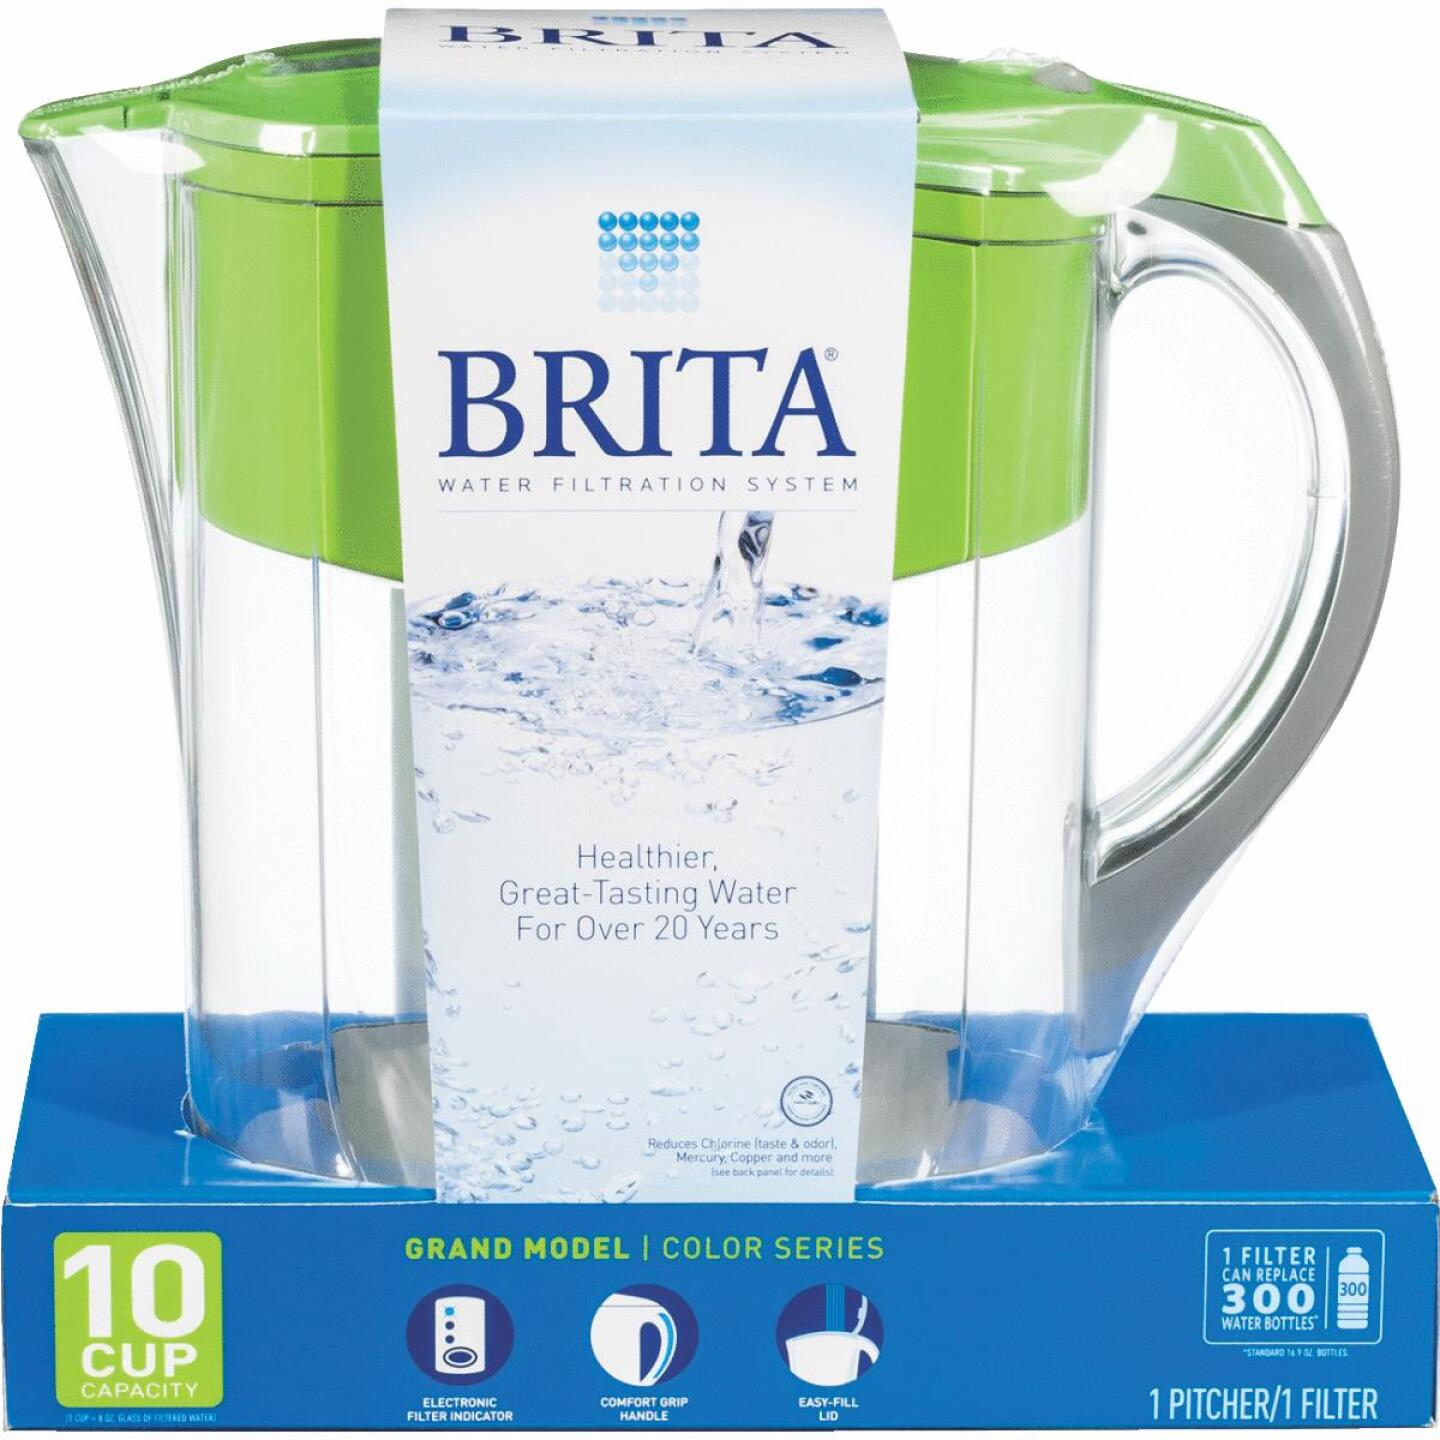 Brita Grand 10-Cup Water Filter Pitcher, Green Image 1